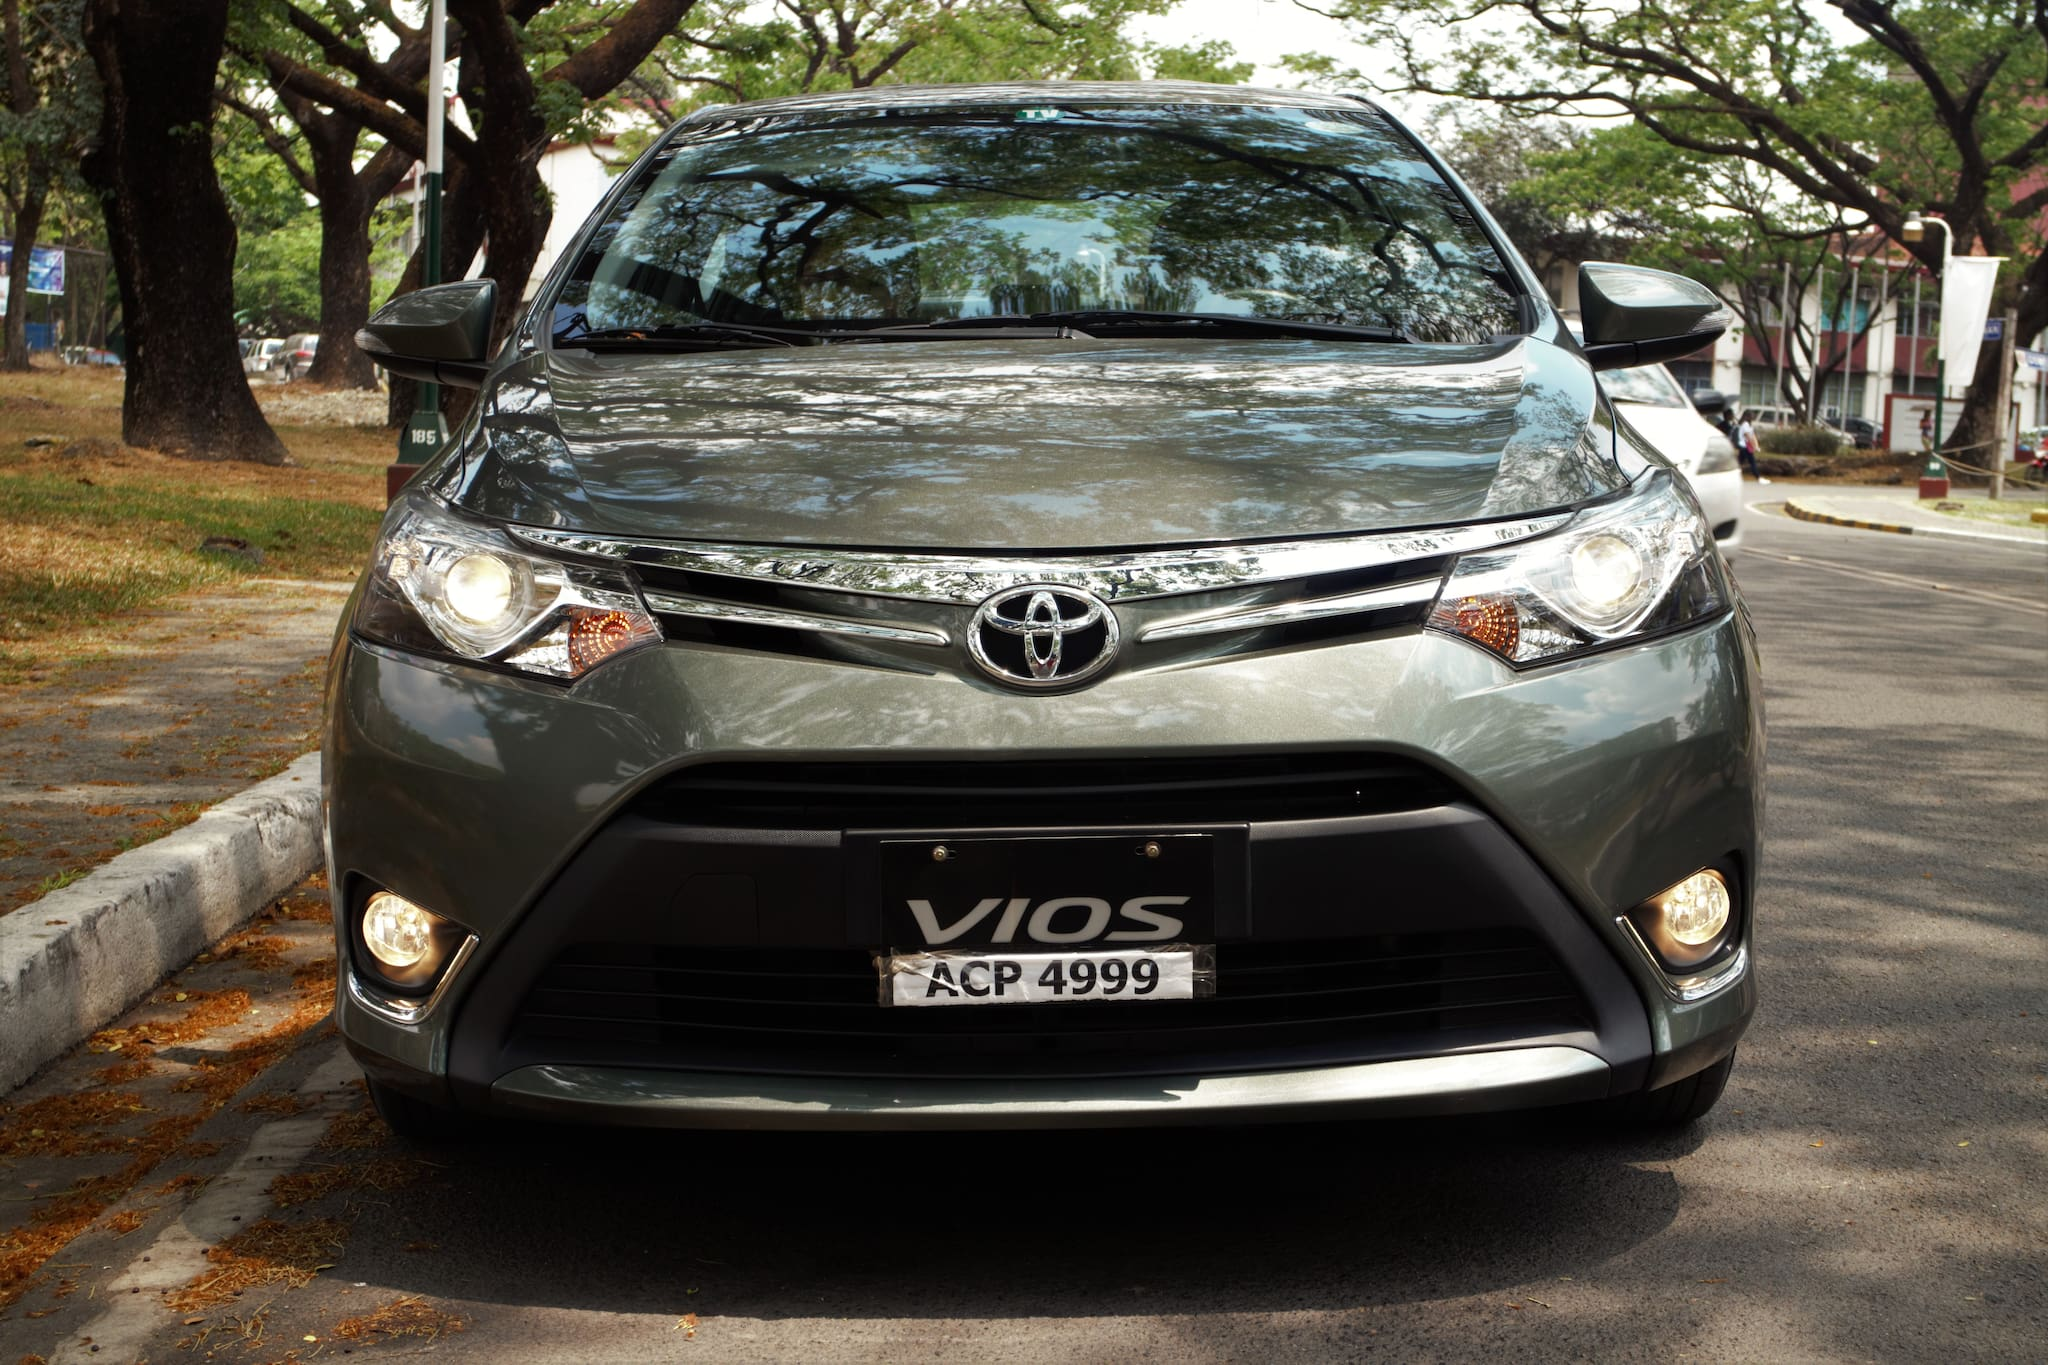 TEST DRIVE: 2016 Toyota Vios 1.5 G A/T - The Popular Choice